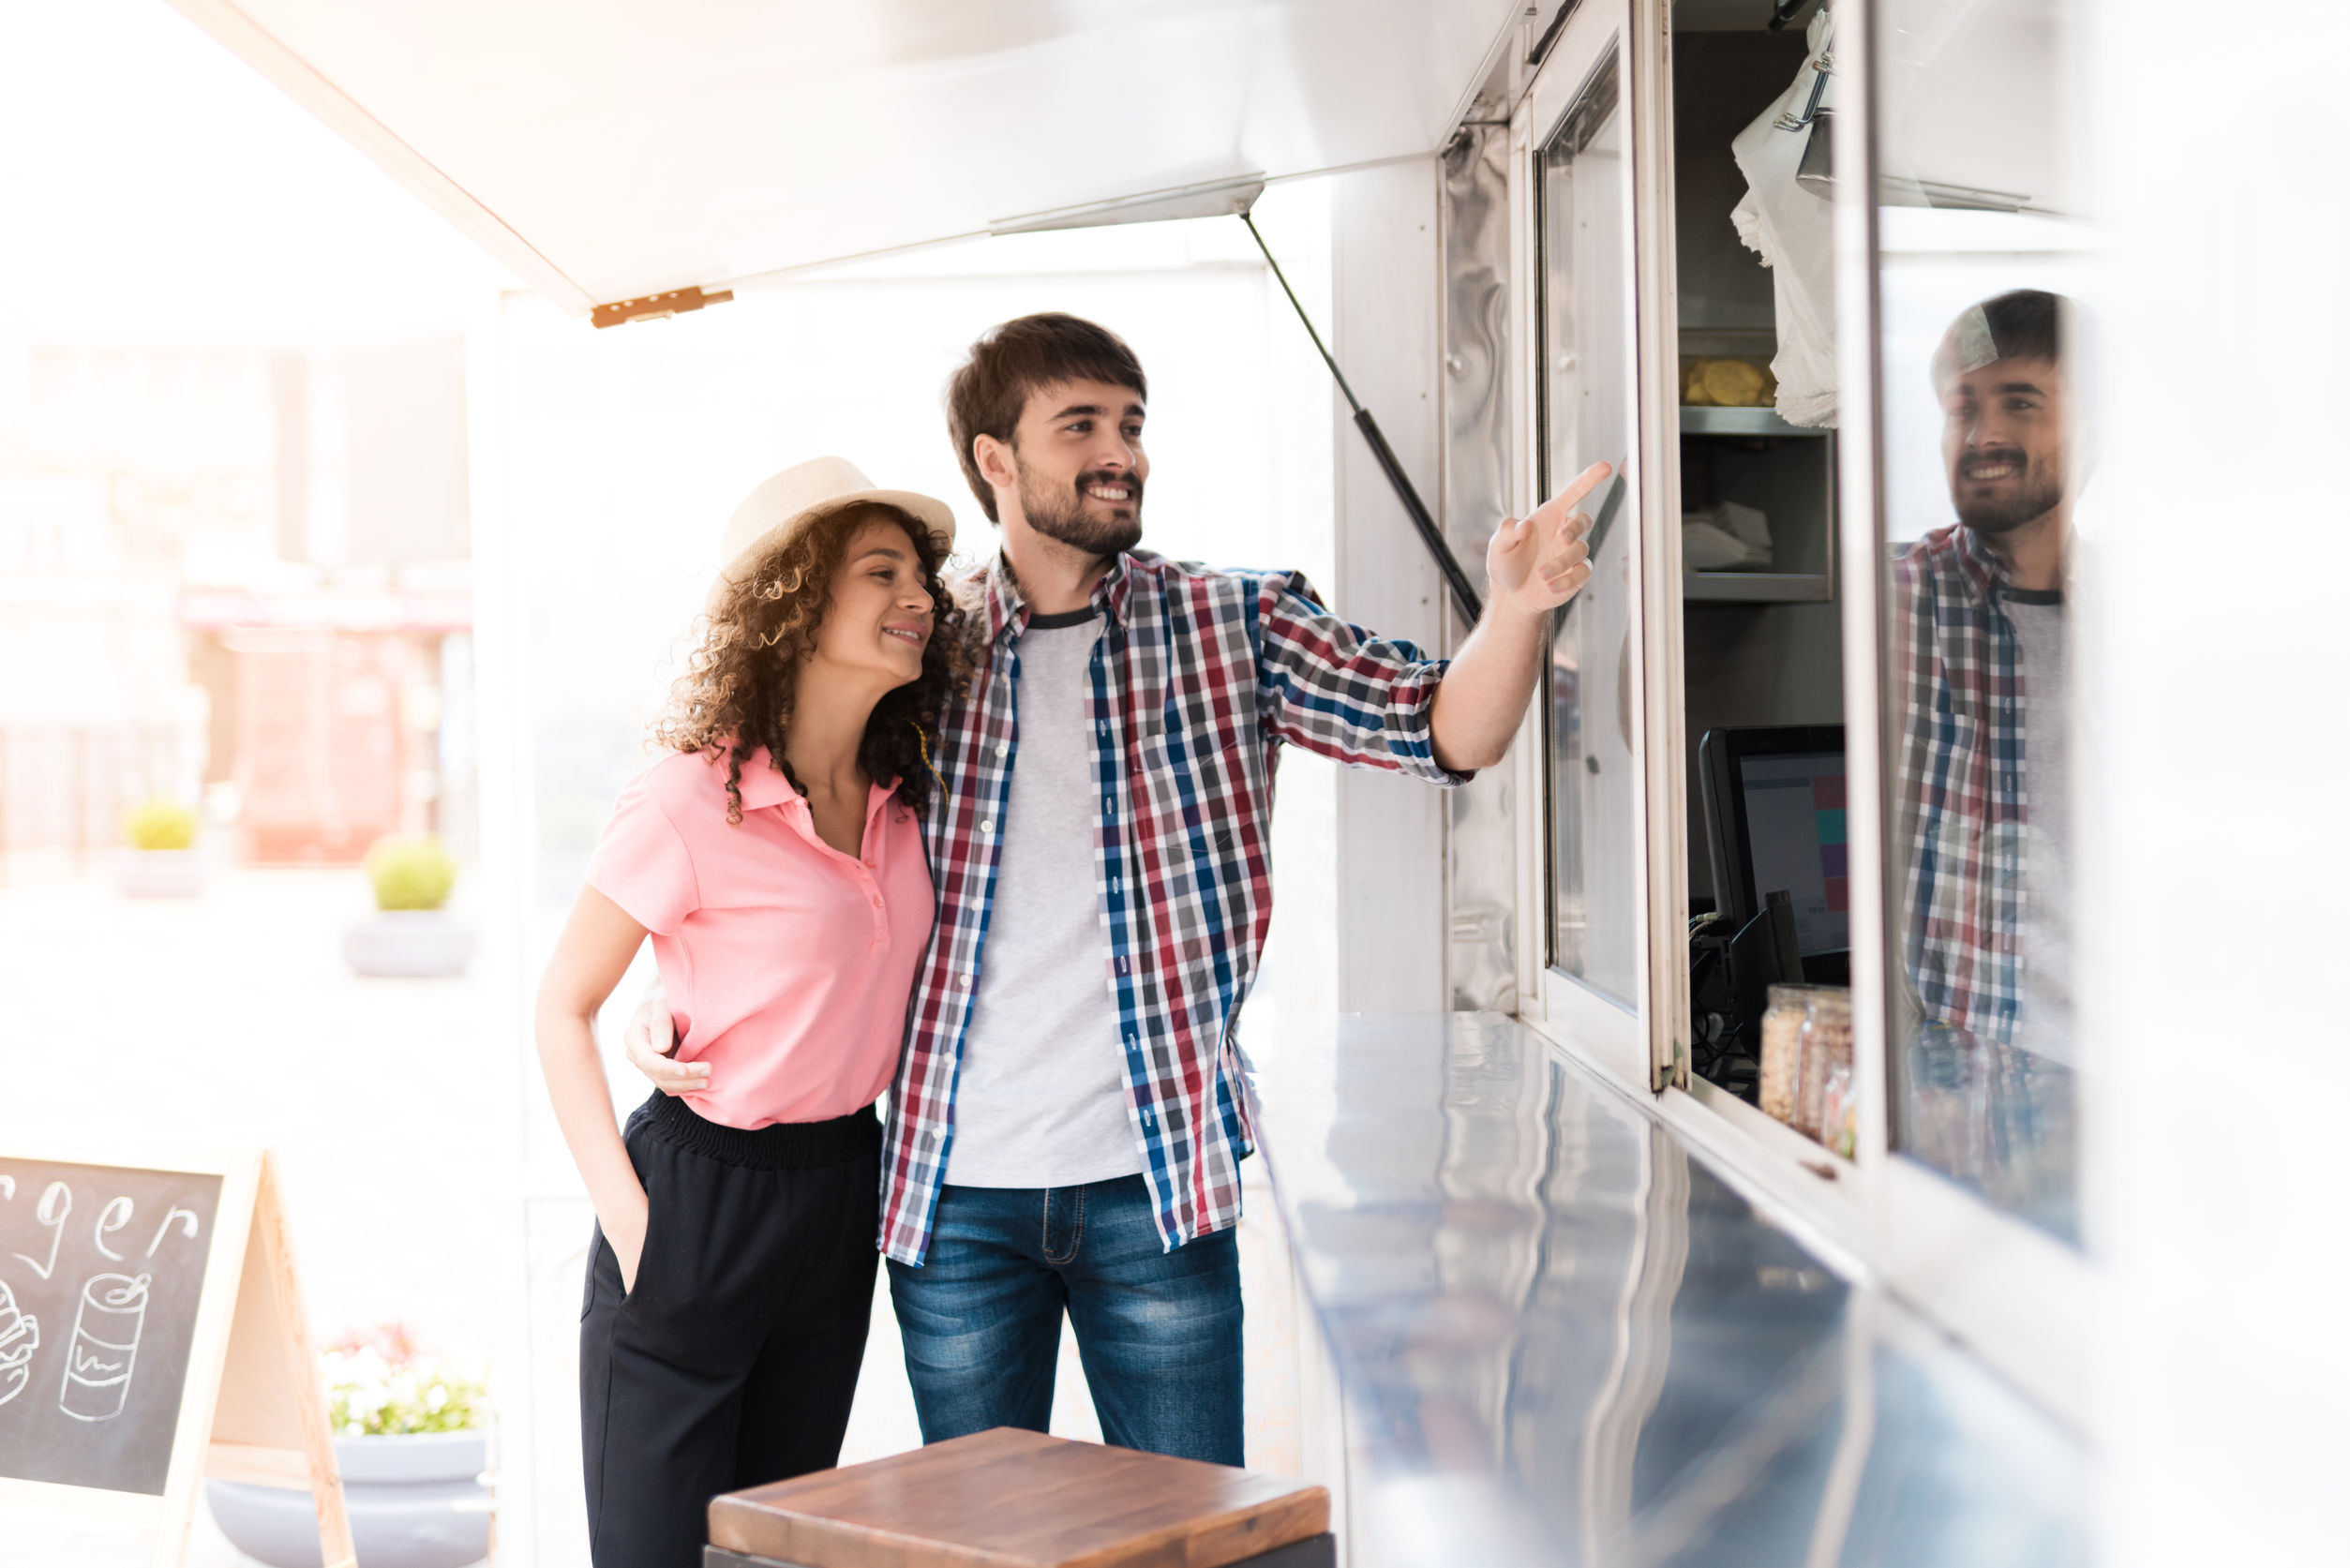 What Entrepreneurs Need to Know to Justify Food Truck Cost